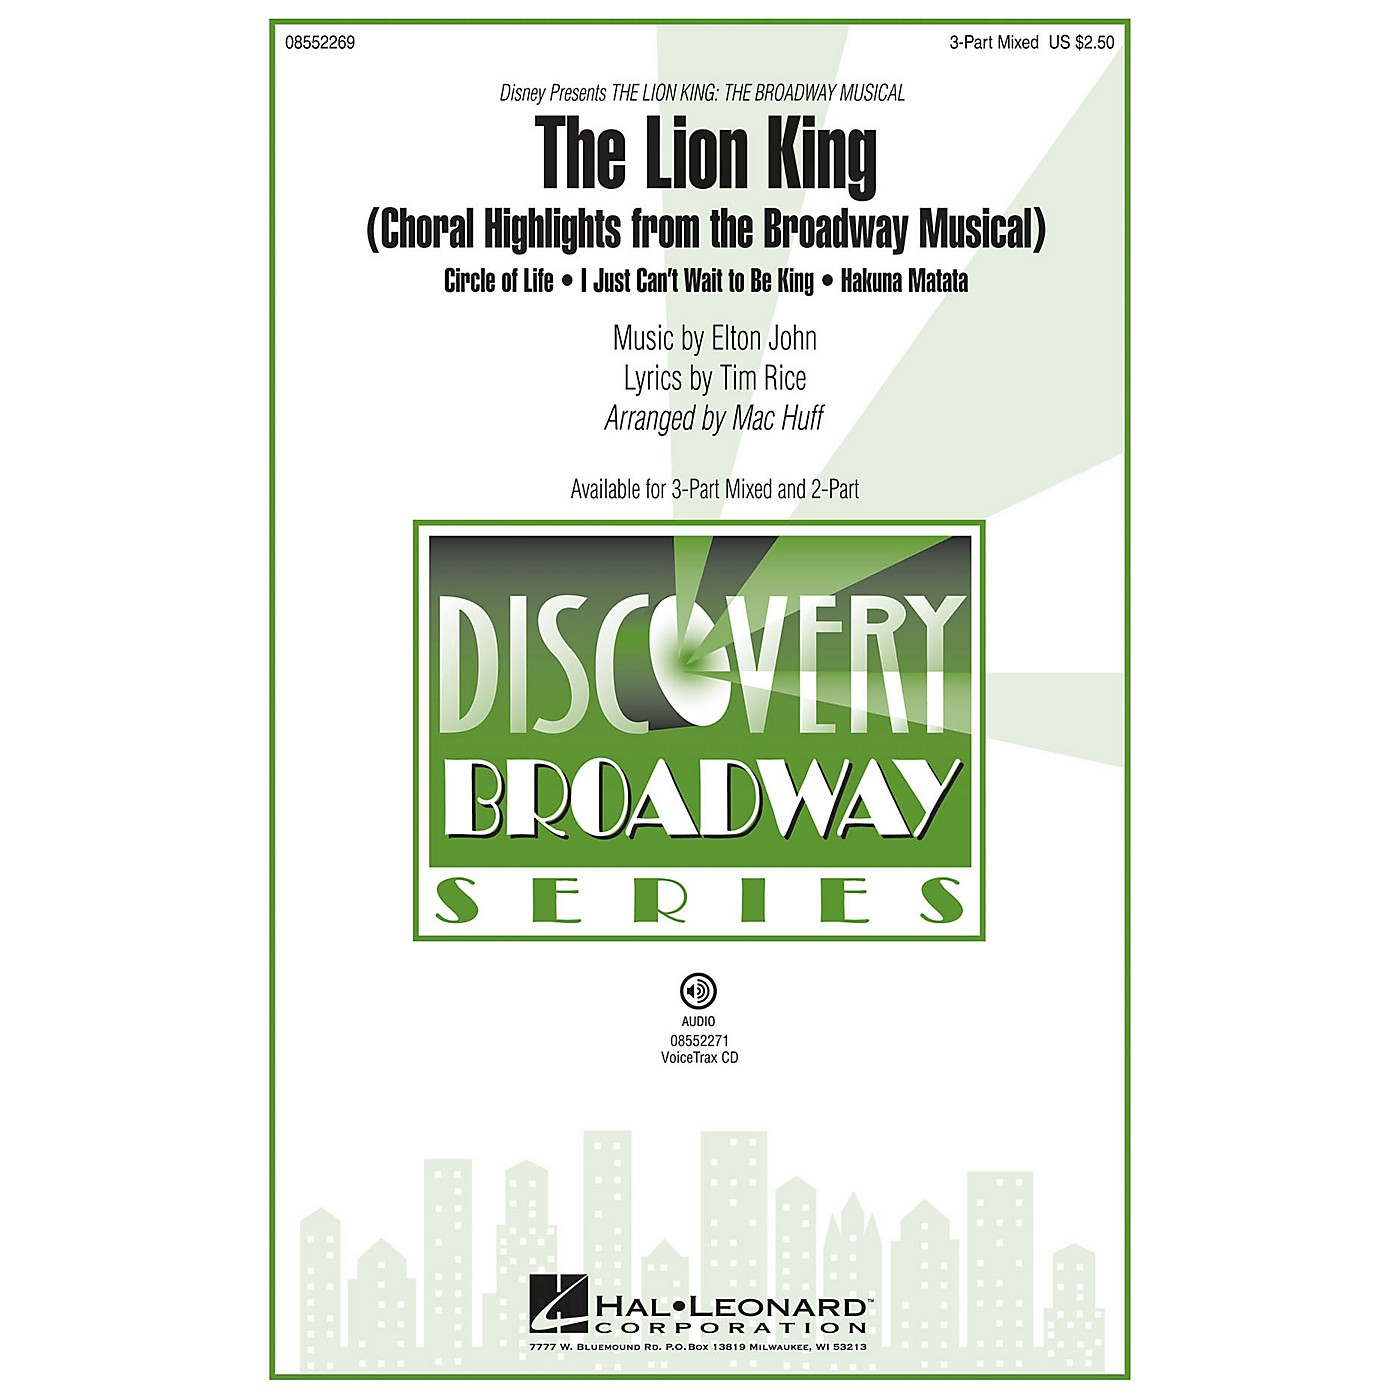 Hal Leonard The Lion King (Broadway Musical Highlights) Discovery Level 2 3-Part Mixed arranged by Mac Huff thumbnail